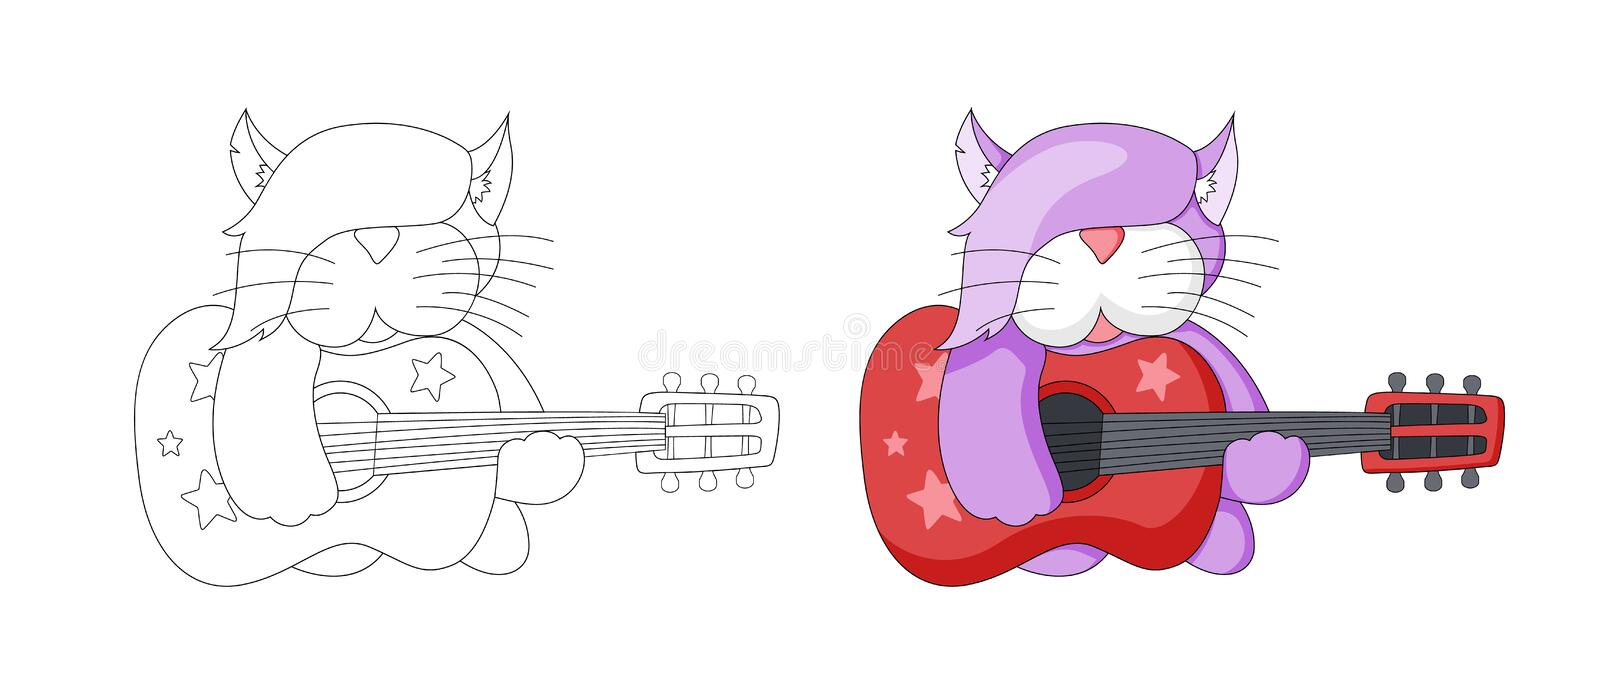 Musical cartoon animal. Childish cat with guitar. Coloring book page for kids vector illustration